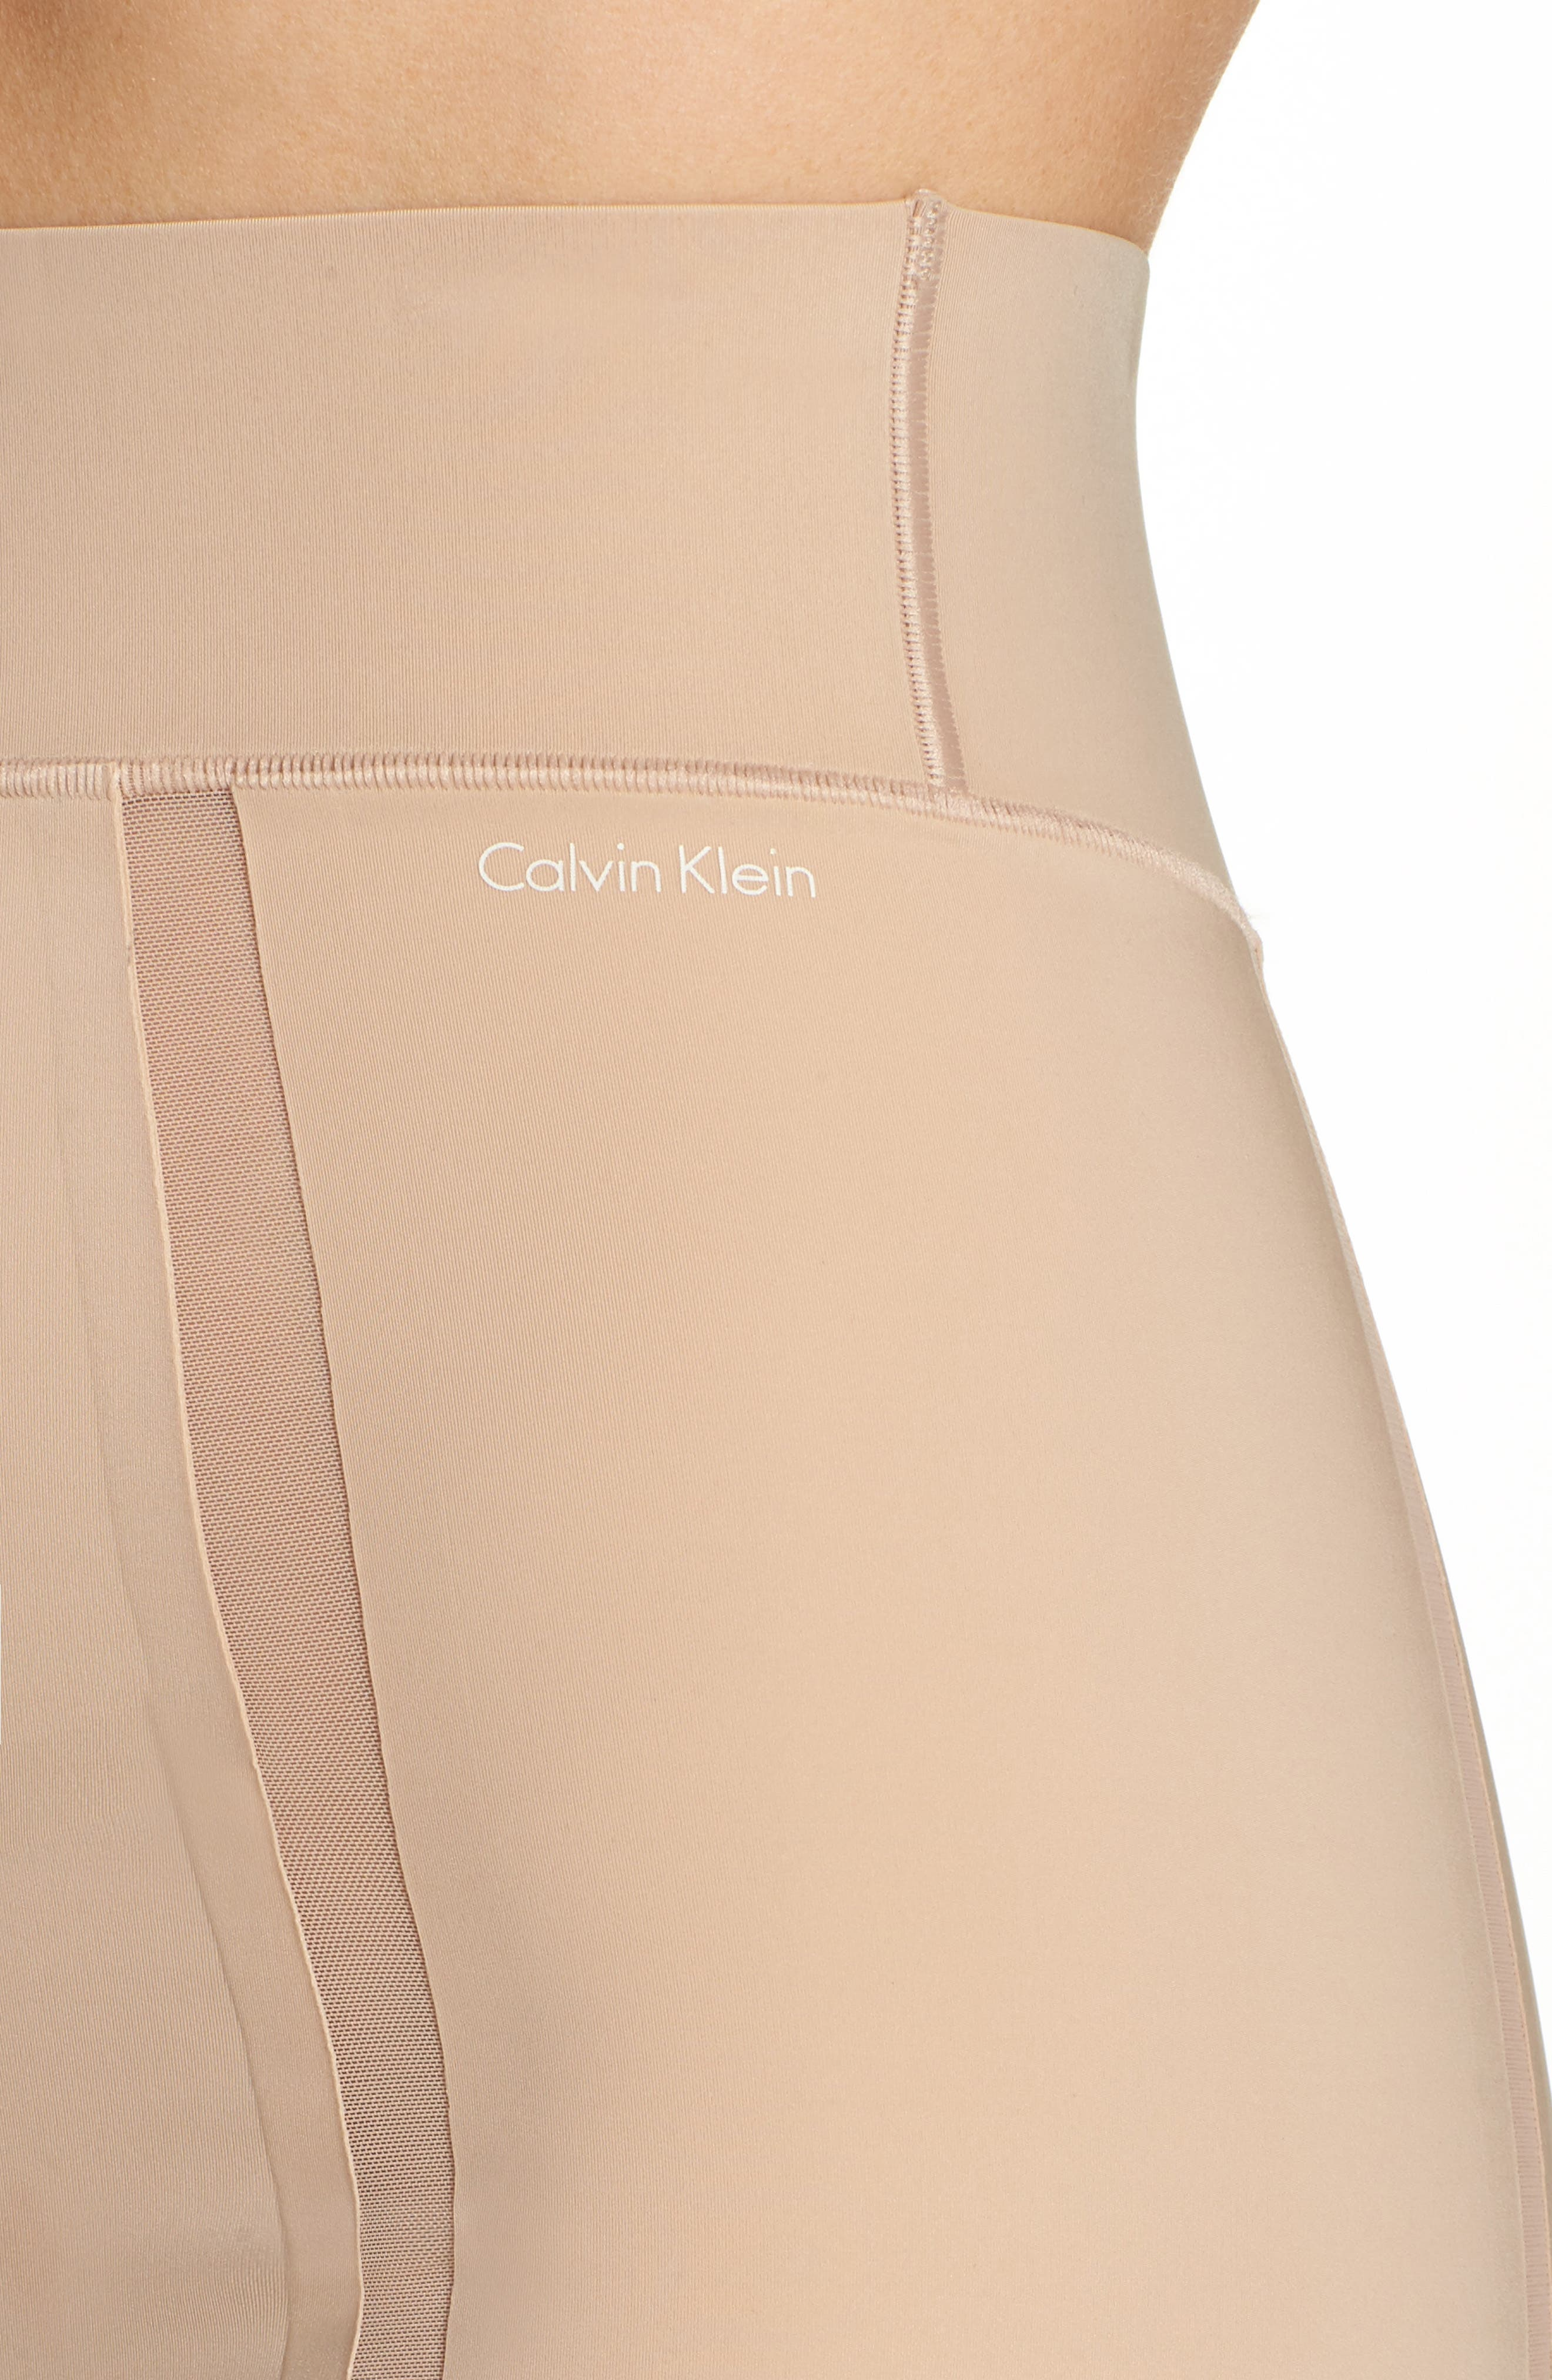 Sculpted Shapewear Thigh Shaper,                             Alternate thumbnail 4, color,                             250